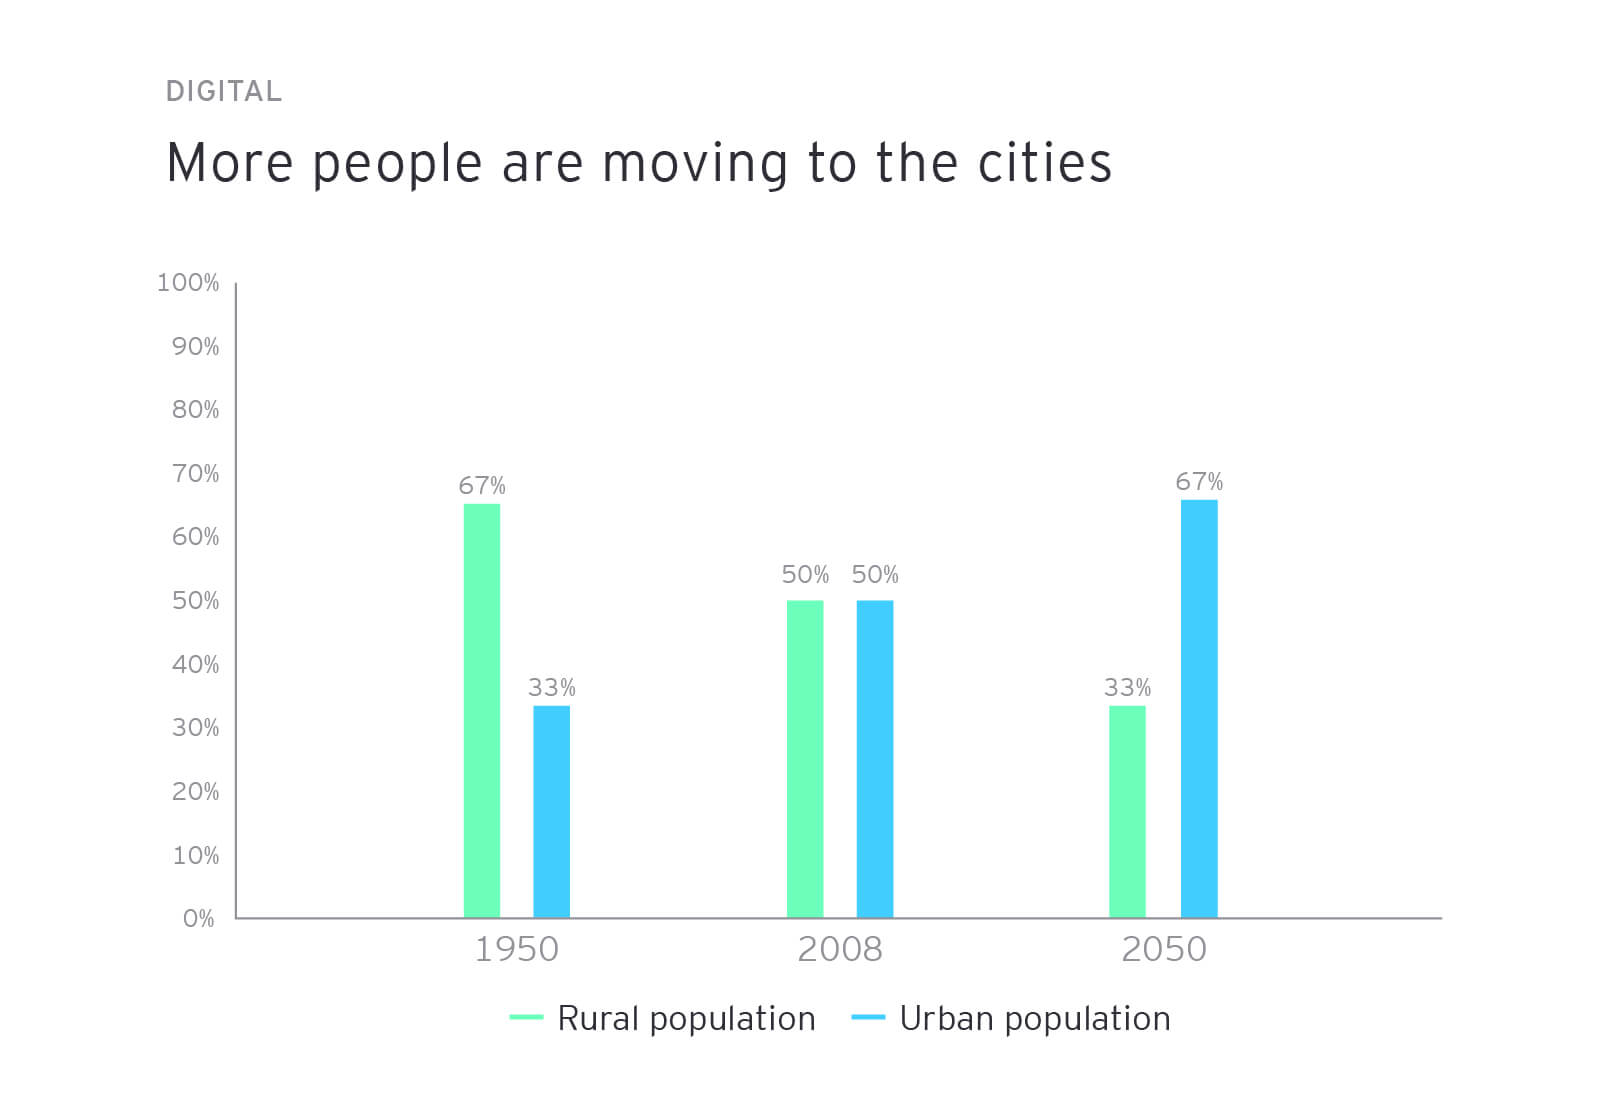 More people are moving to the cities